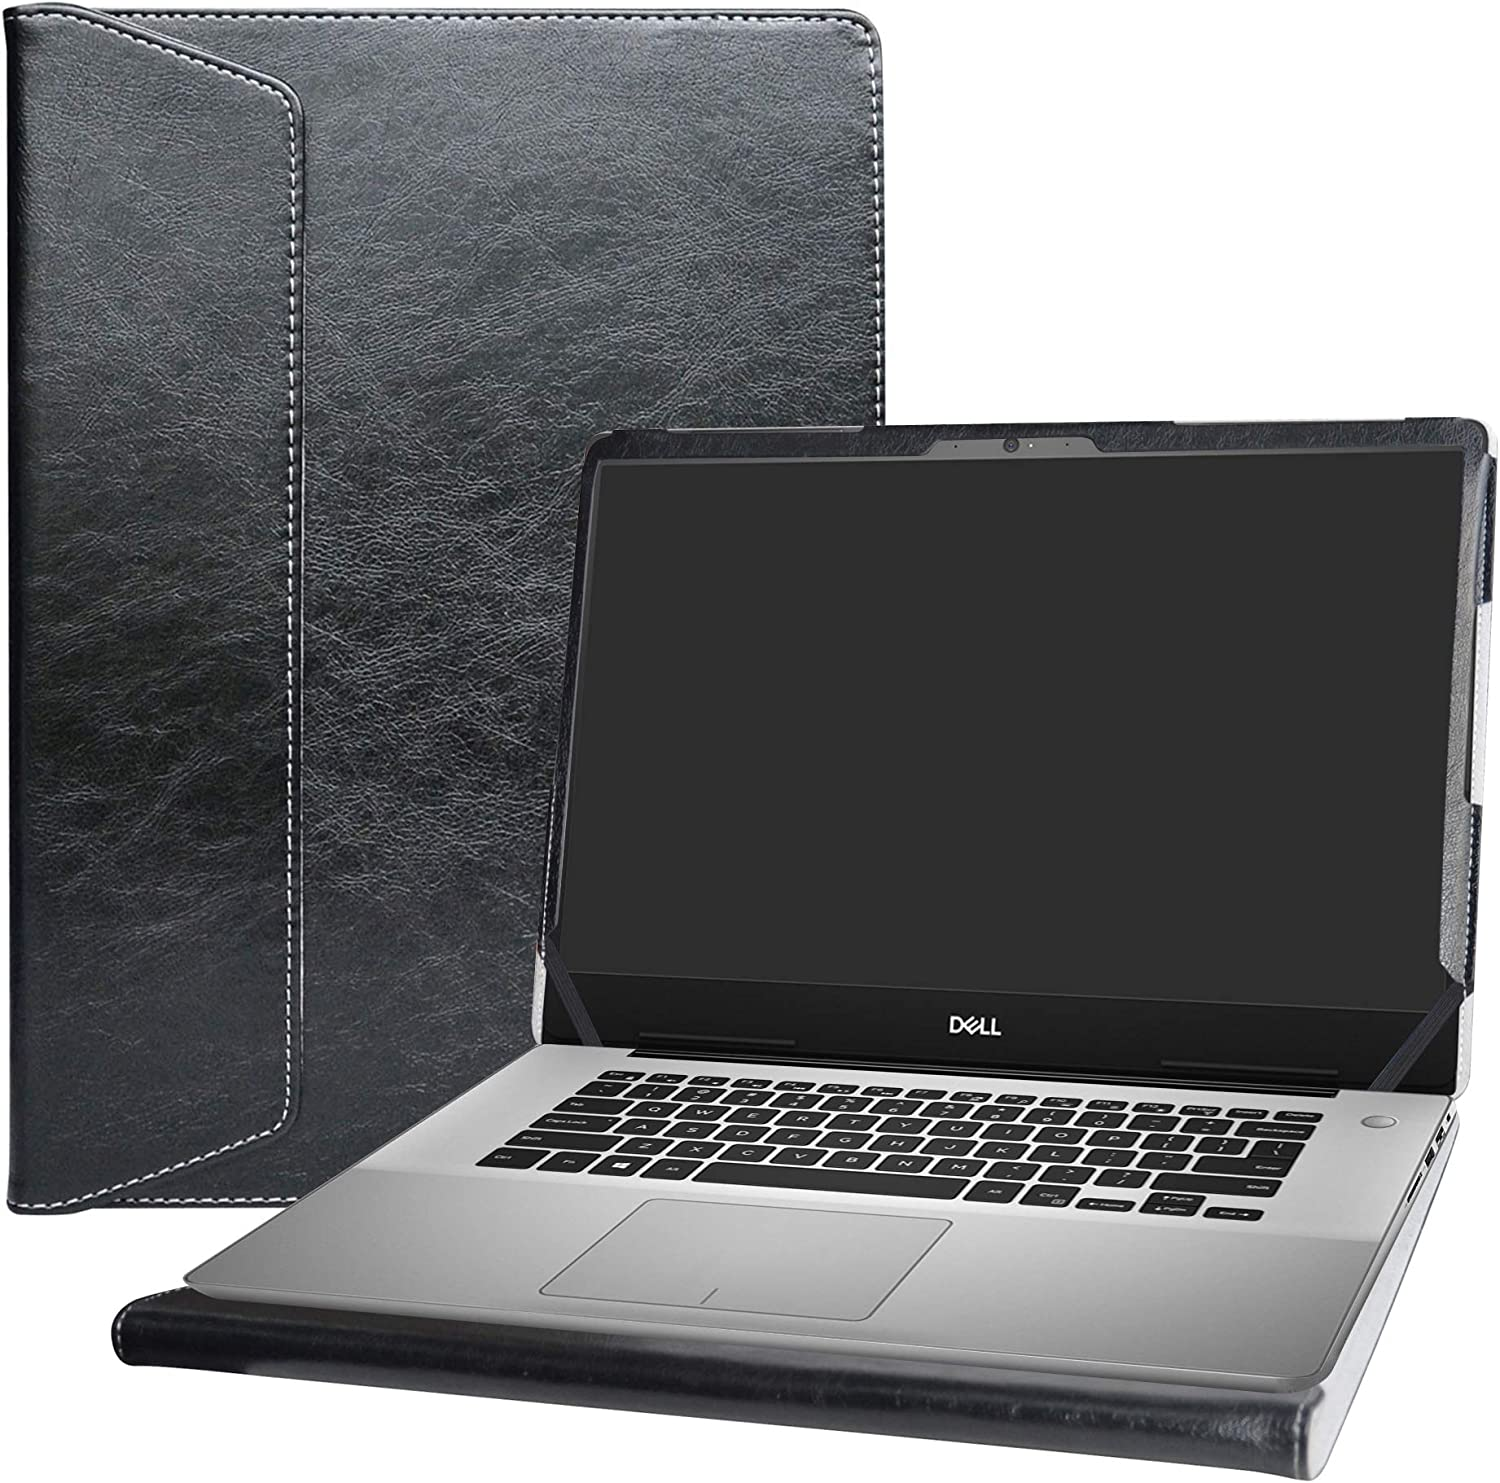 """Alapmk Protective Case Cover for 15.6"""" Dell inspiron 15 5580 i5580 5585 i5585/inspiron 15 2-in-1 7590 7591/Vostro 15 5581 Series Laptop[Note:Not fit Dell inspiron 15 5584/Latitude 15 5580],Black"""